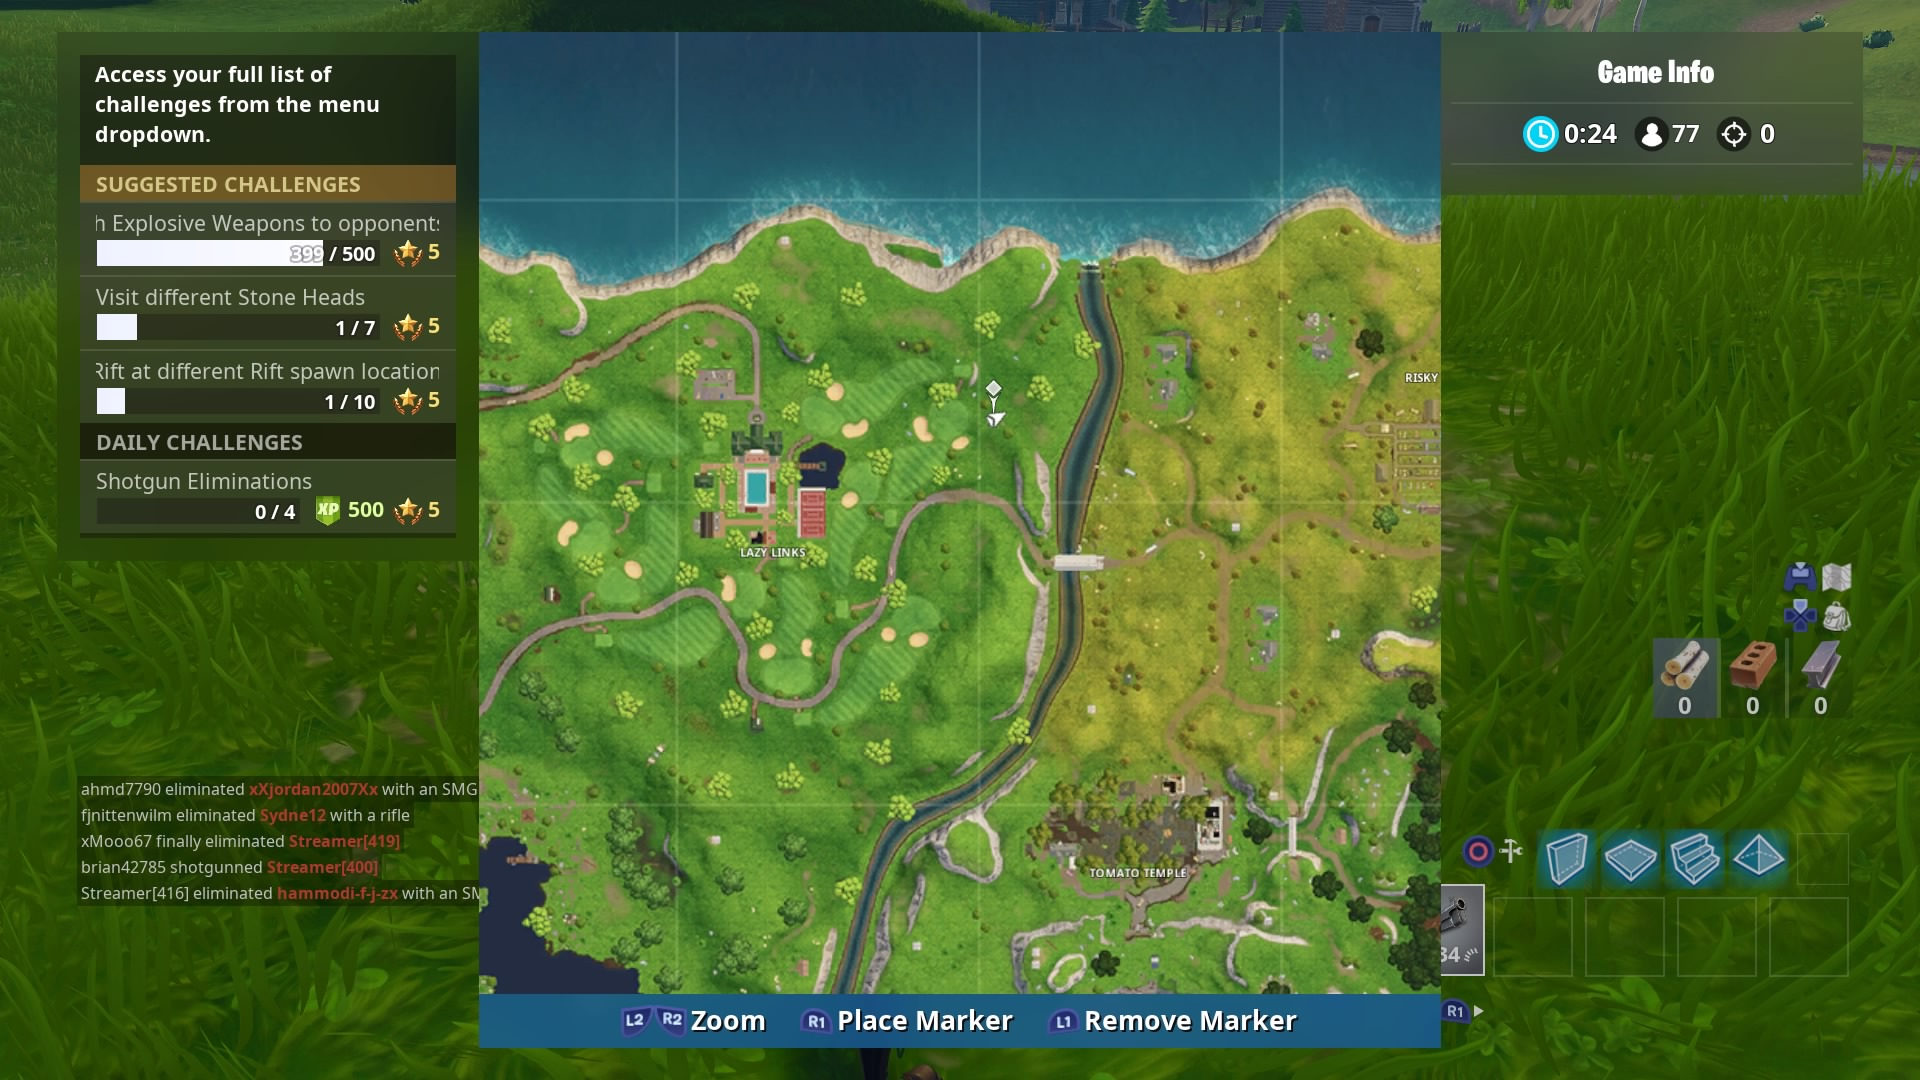 Heres What It Looks Like On The Map